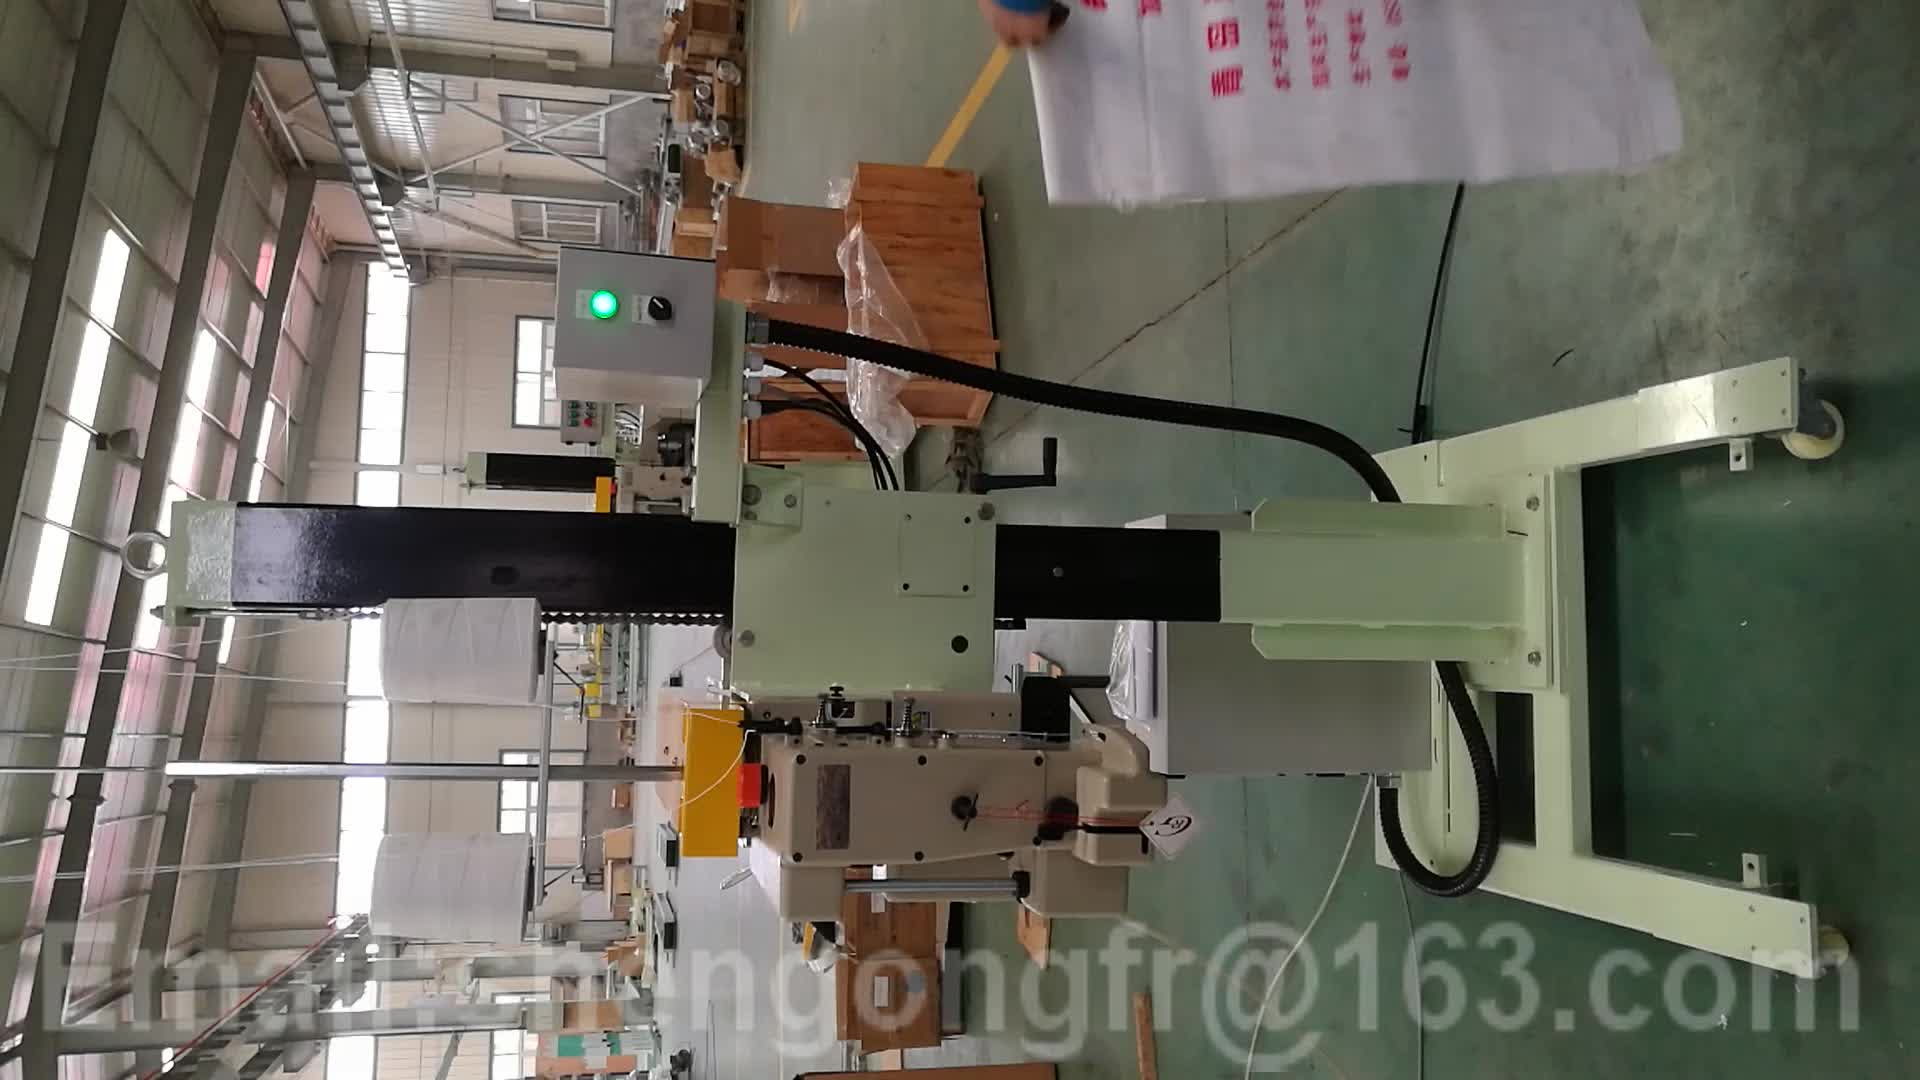 SHENPENG A1-PB+DS-9C high speed strong pedestal and efficient bag closing sewing machine, bag closer sewing machine